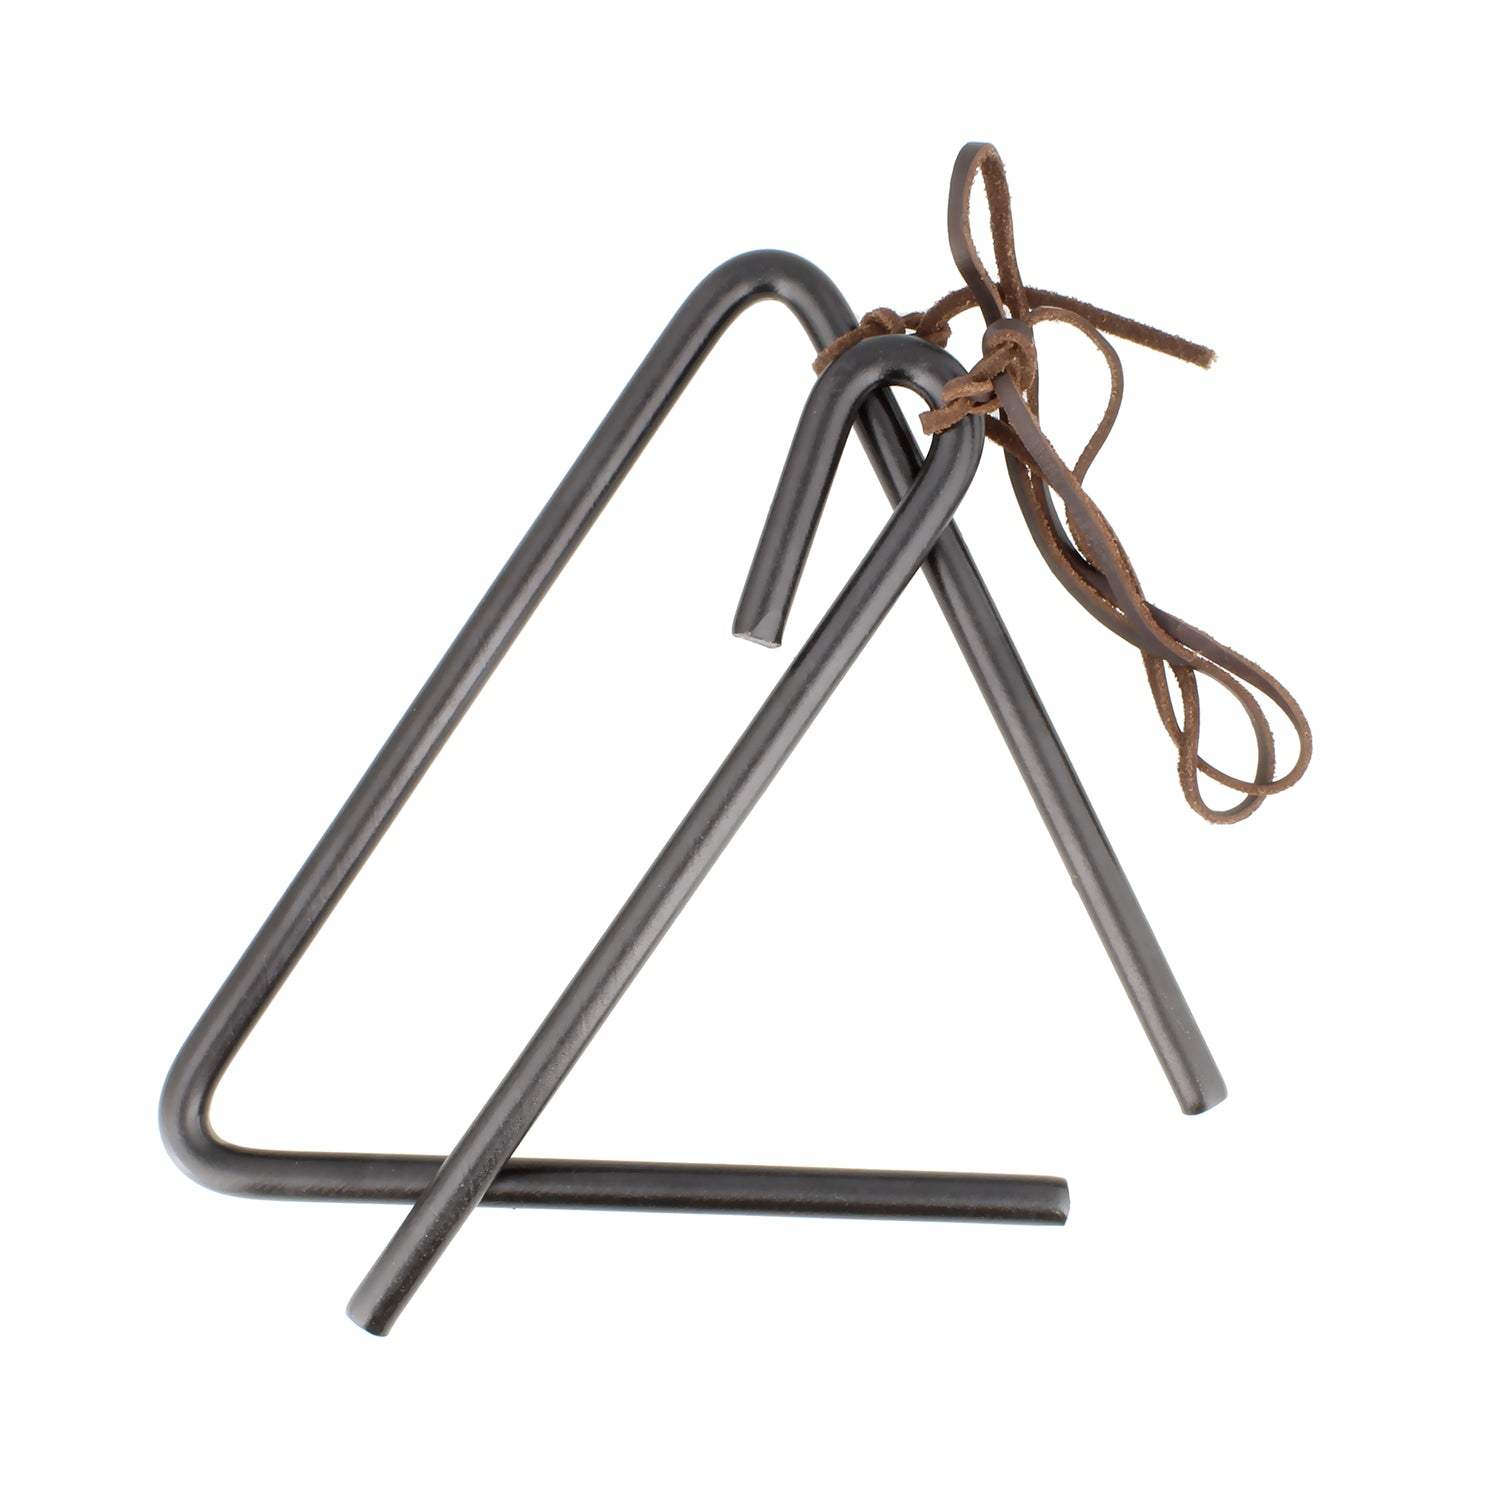 Dinner Triangle Bell Forged Metal Triangle for Outside Cast Iron Dinner Bell Rural365 Triangle Dinner Bell 8in